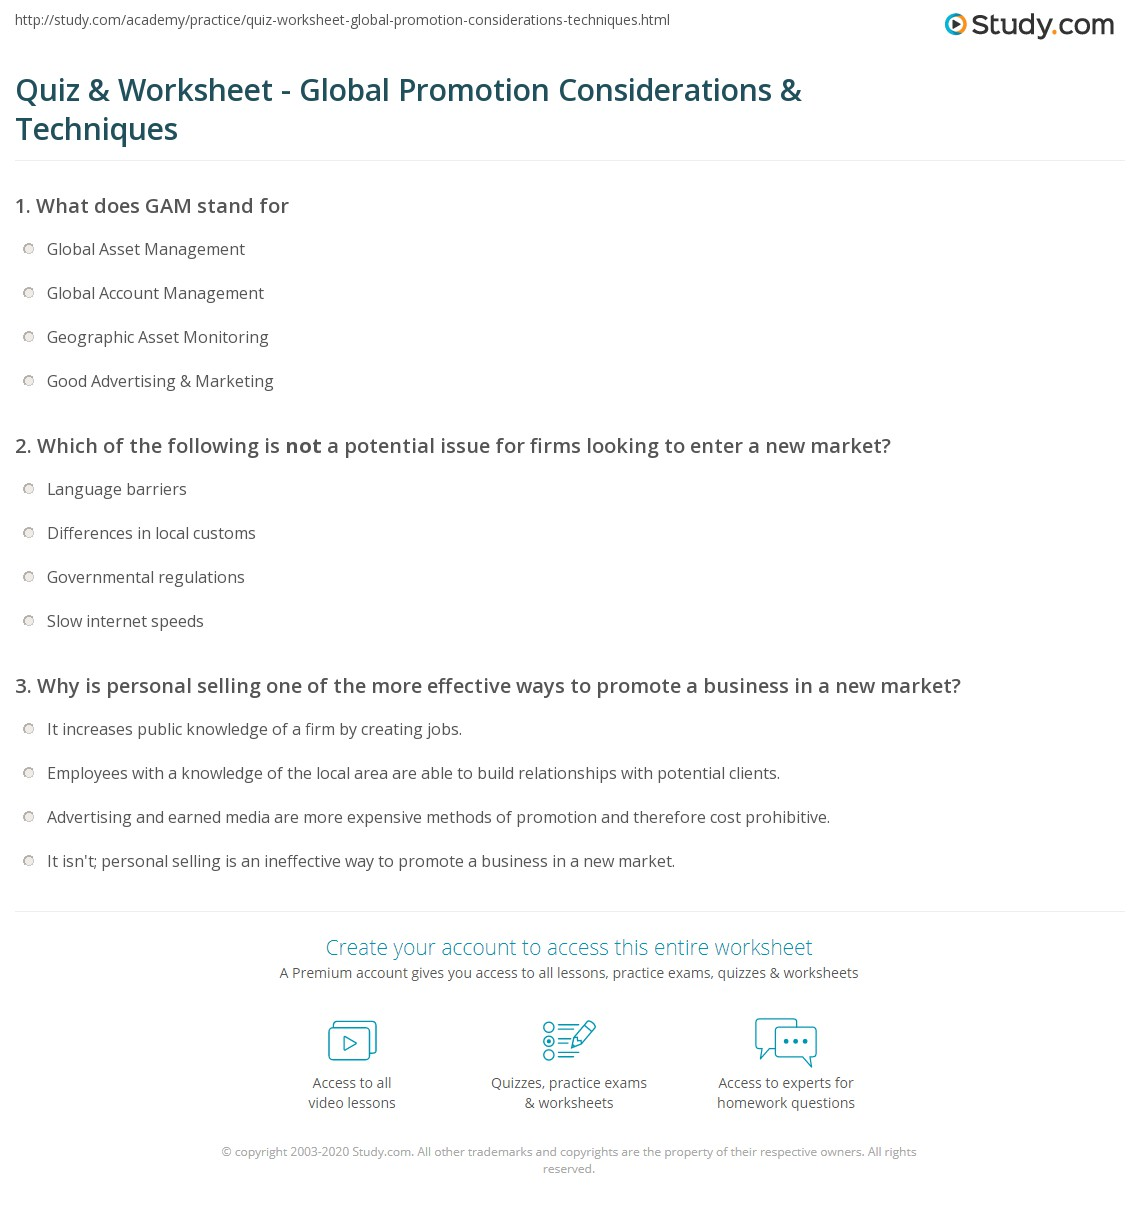 Worksheets Promotion Worksheet quiz worksheet global promotion considerations techniques print issues strategies worksheet